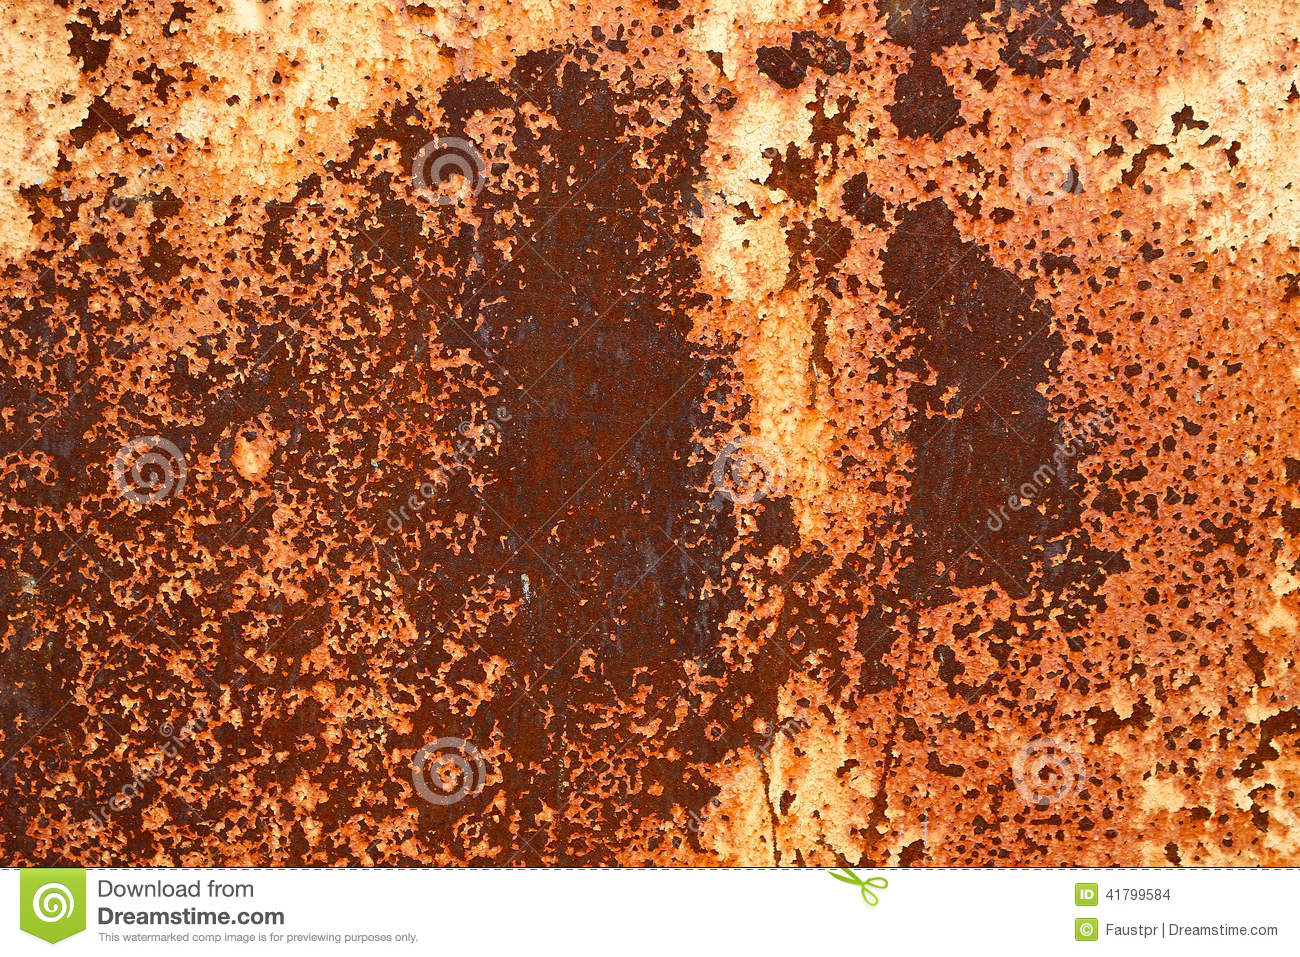 Rusted metal plates - grungy industrial construction background